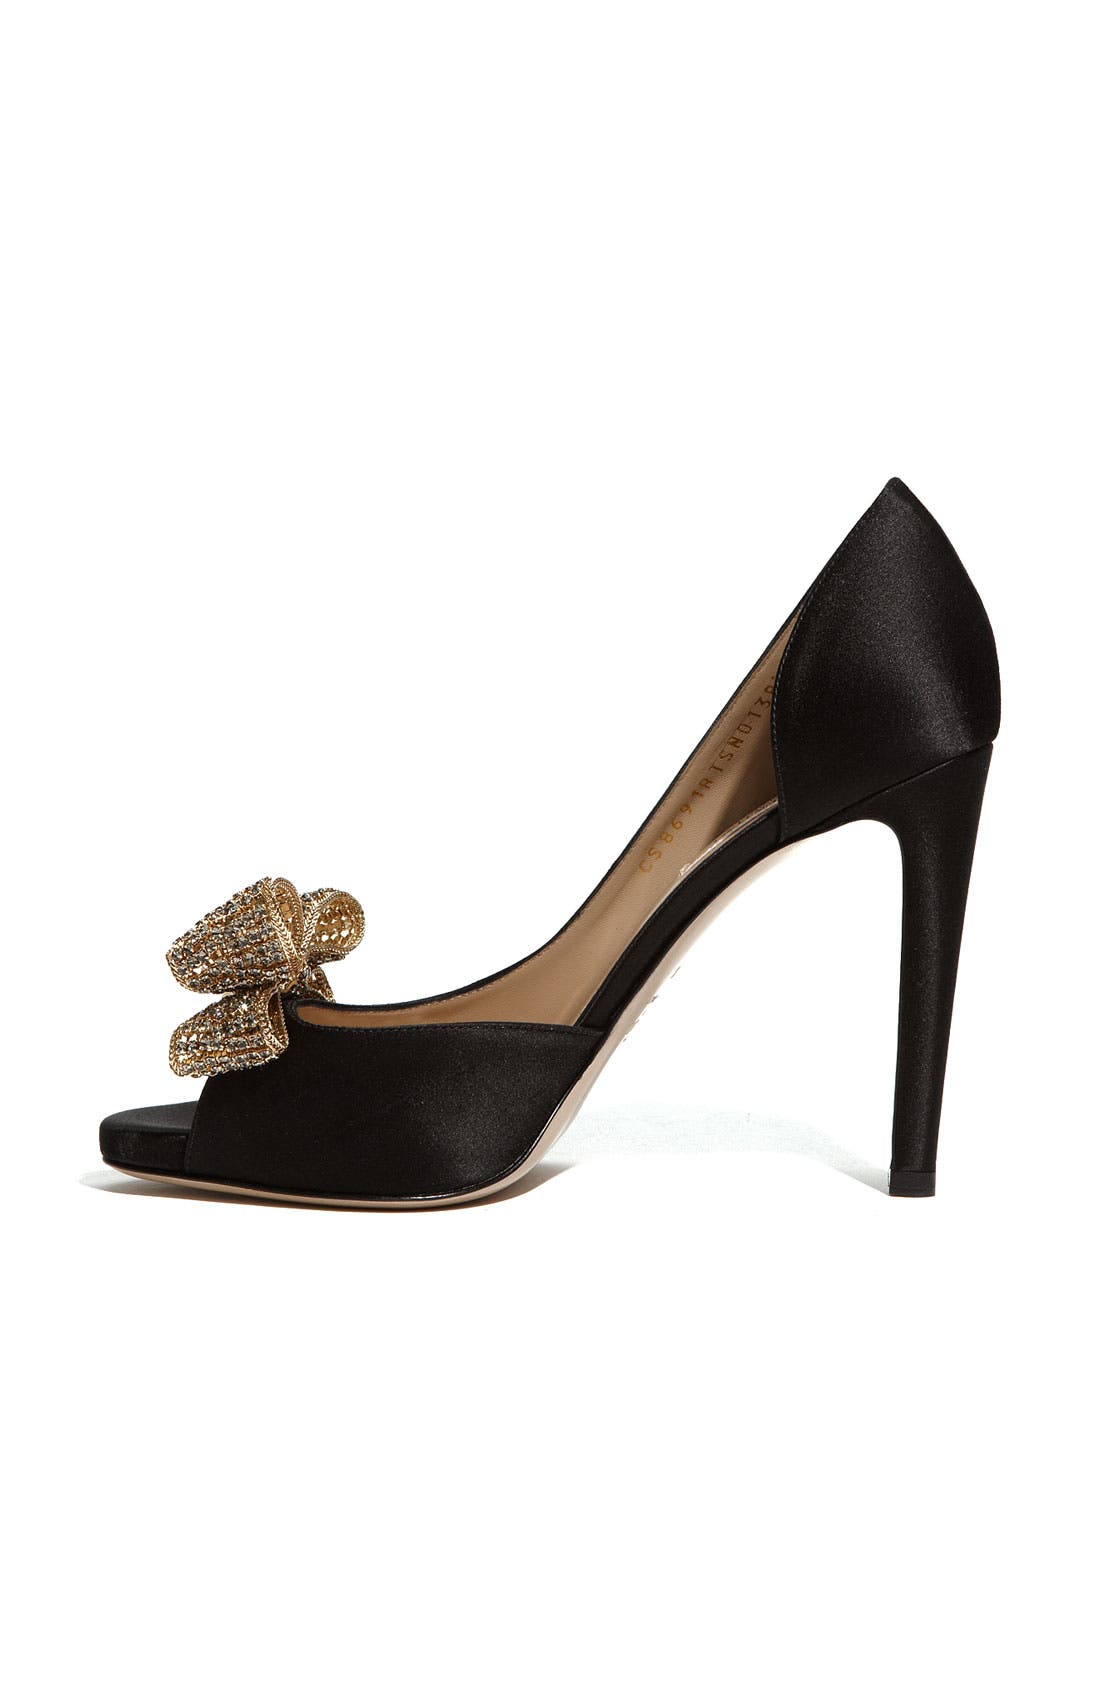 VALENTINO GARAVANI,                             Jewelry Couture Bow d'Orsay Pump,                             Alternate thumbnail 3, color,                             001